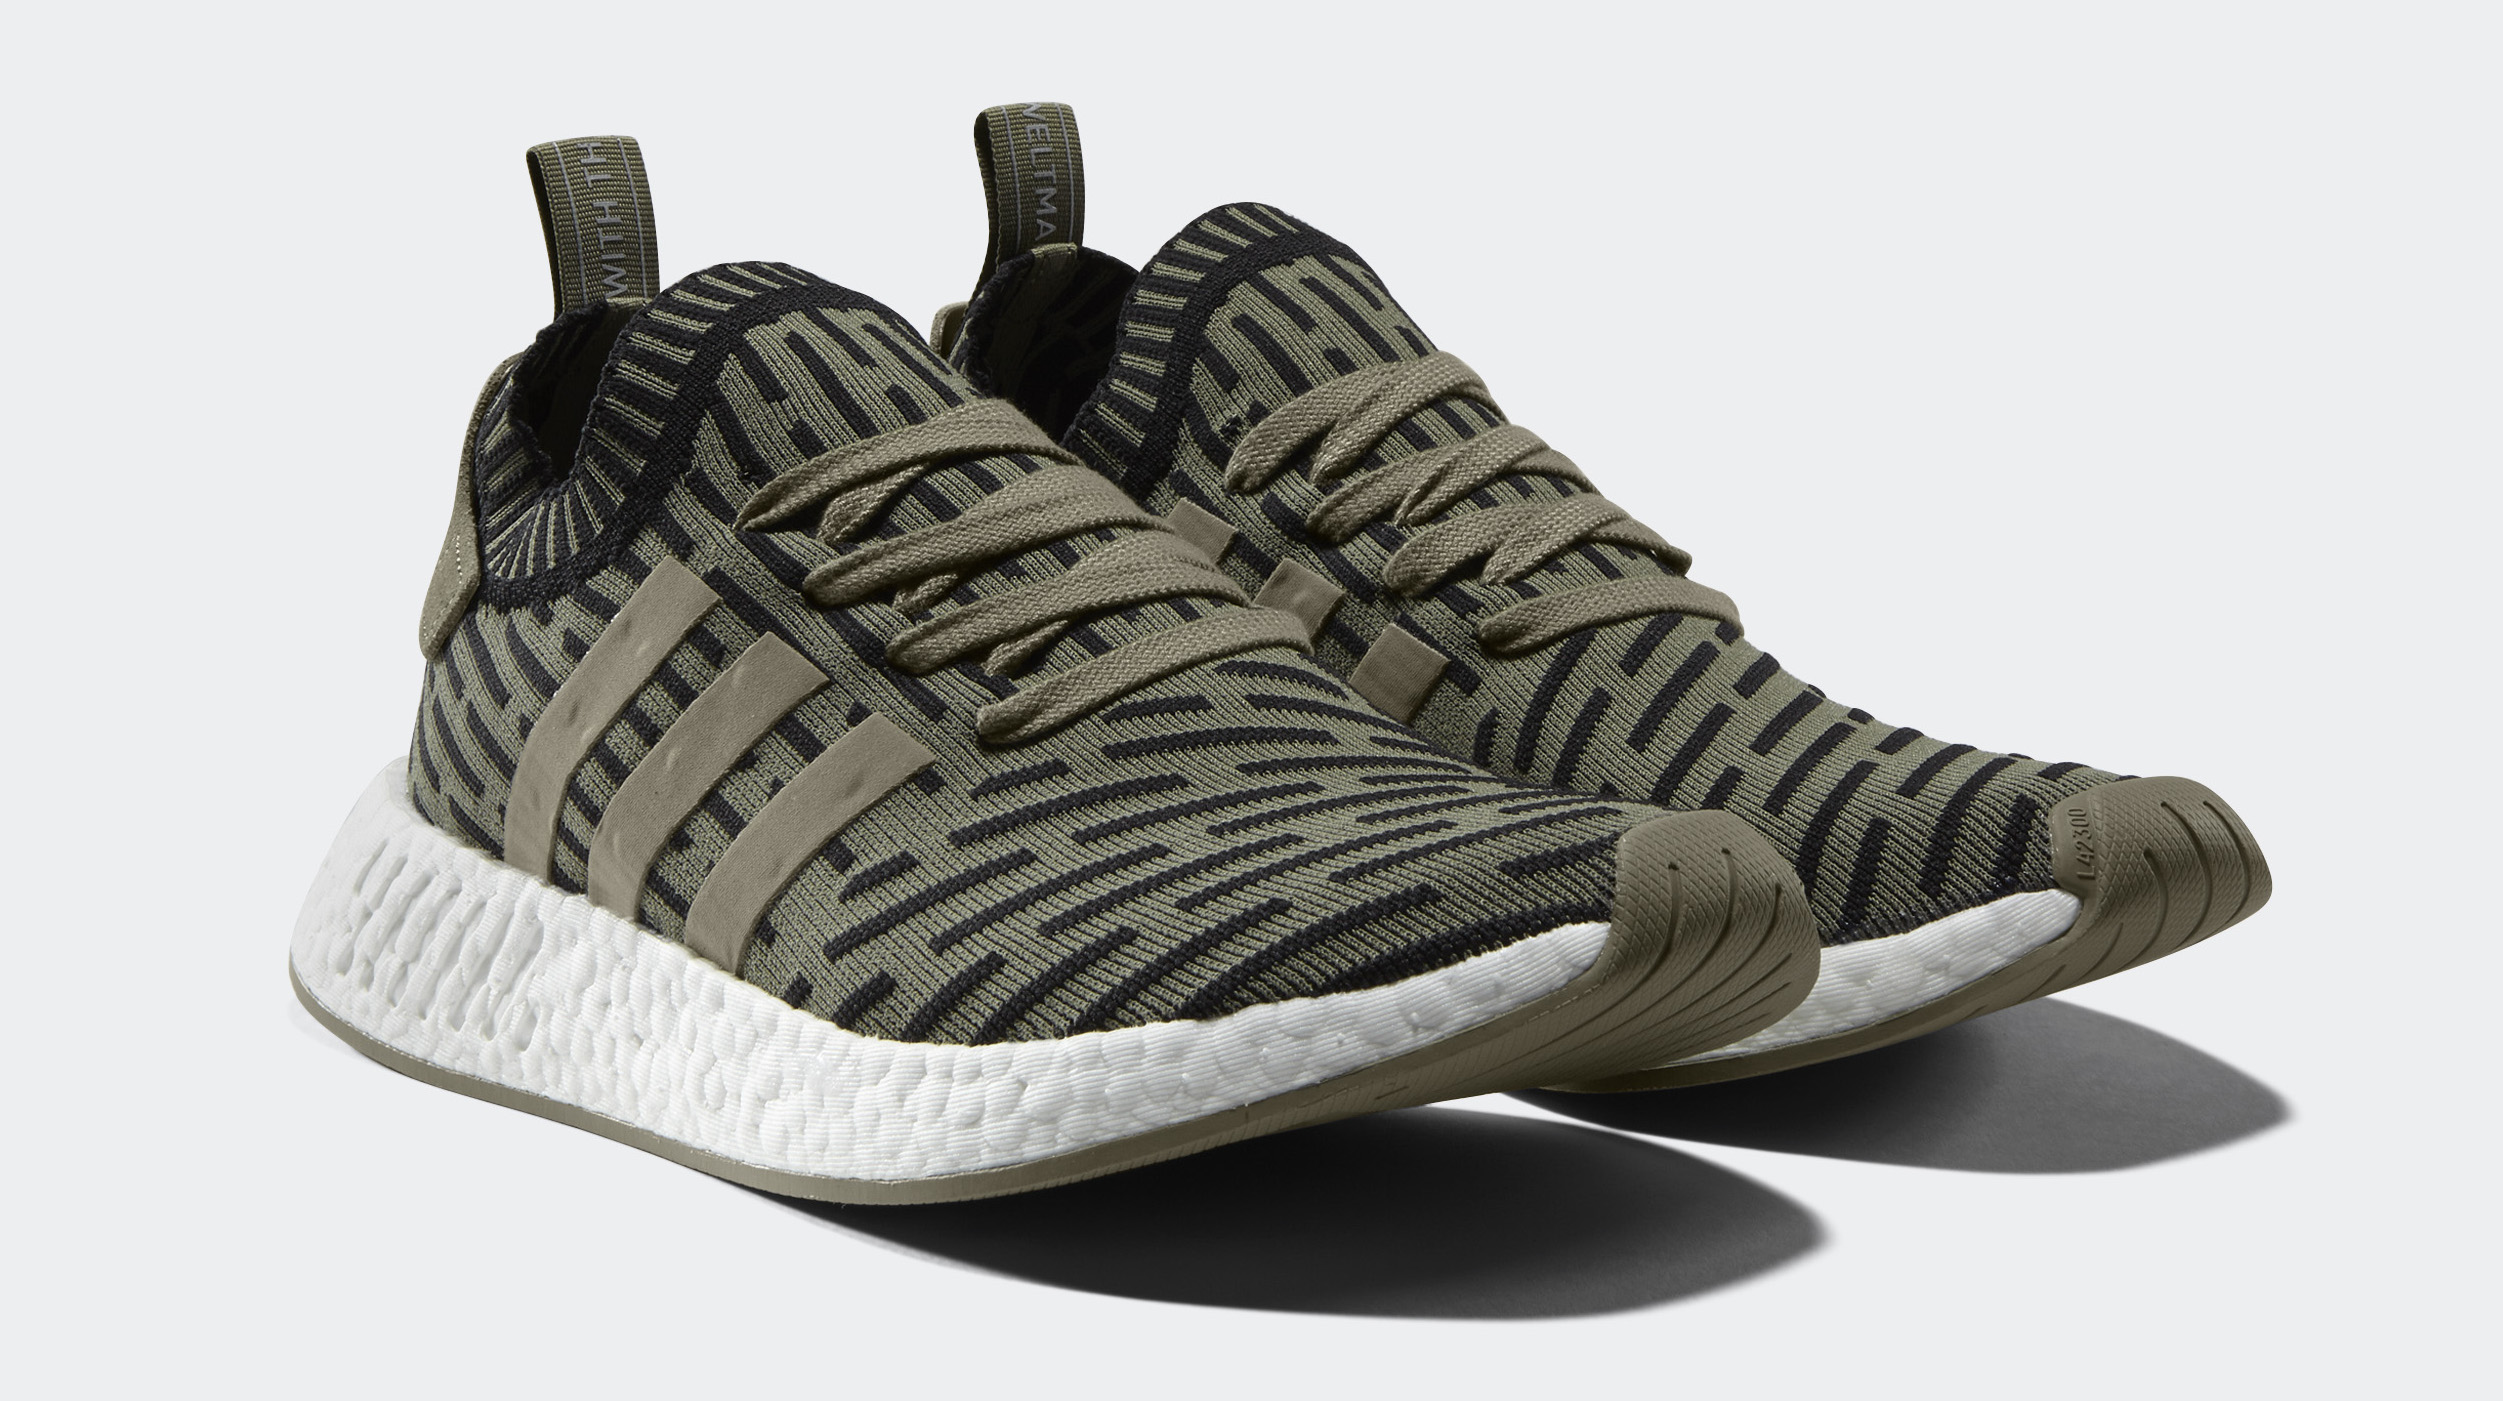 3de208b5813bf Introducing the adidas NMD R 2 Sneaker - Soleracks